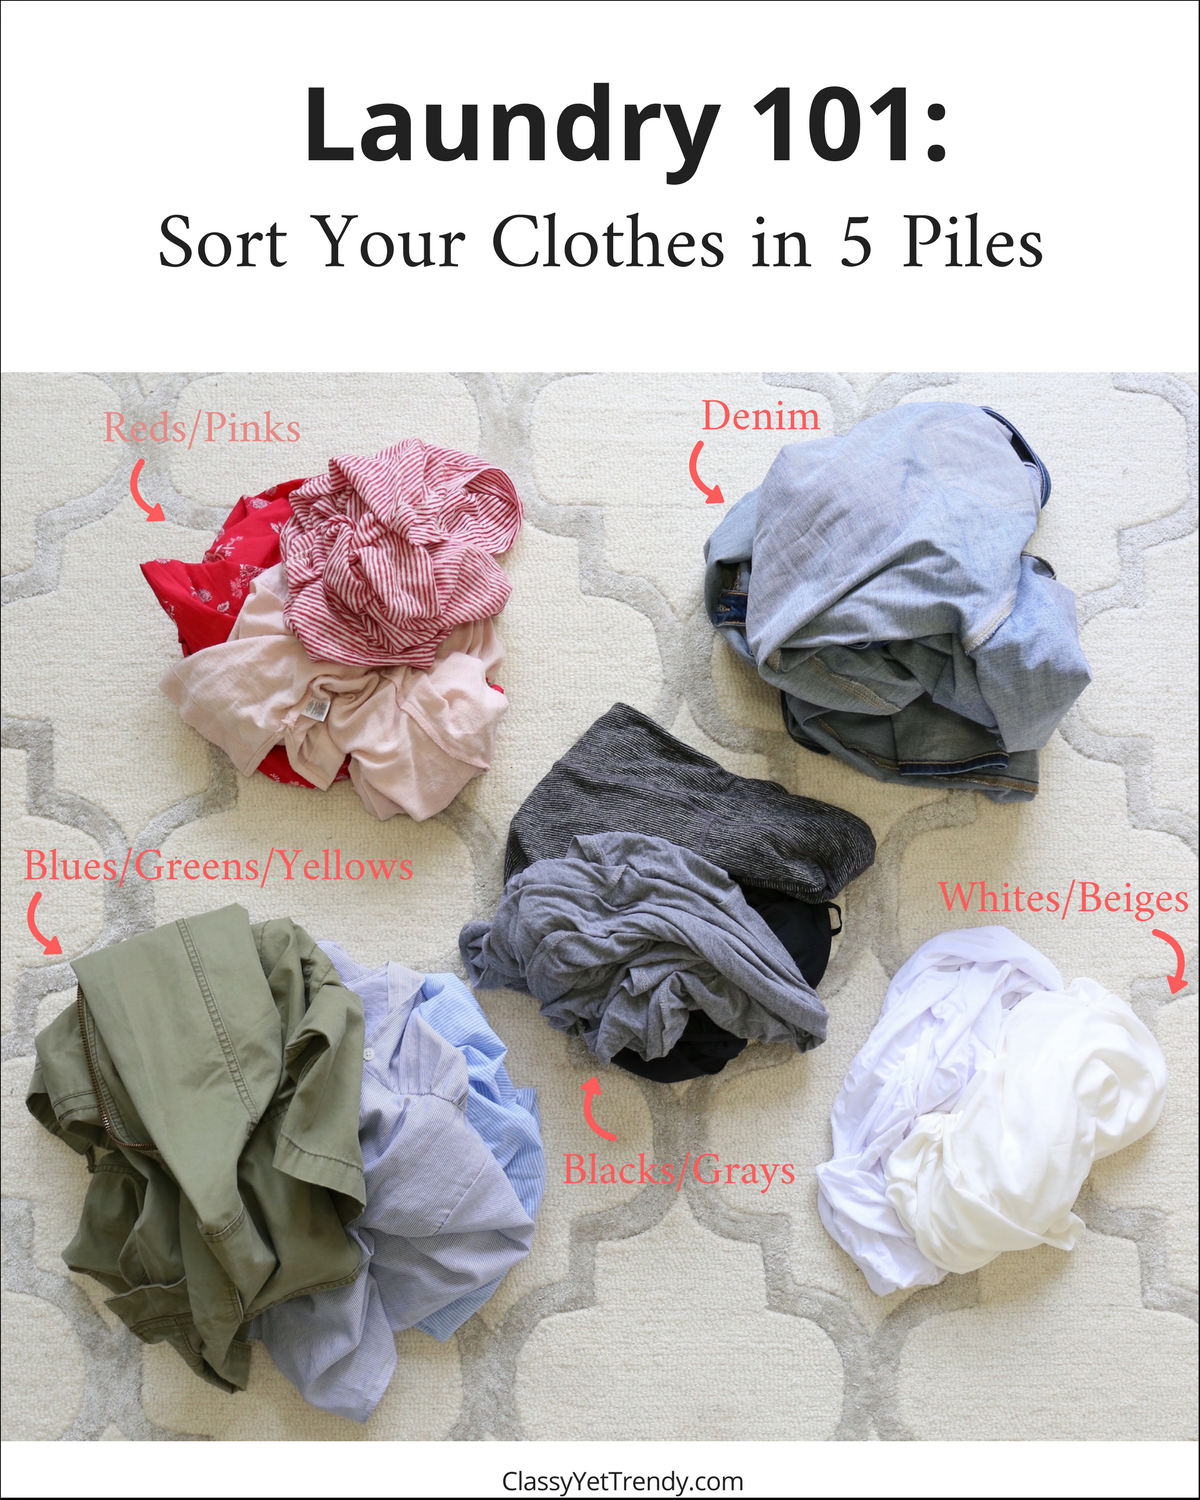 Laundry 101 - Sort your Clothes in 5 Piles